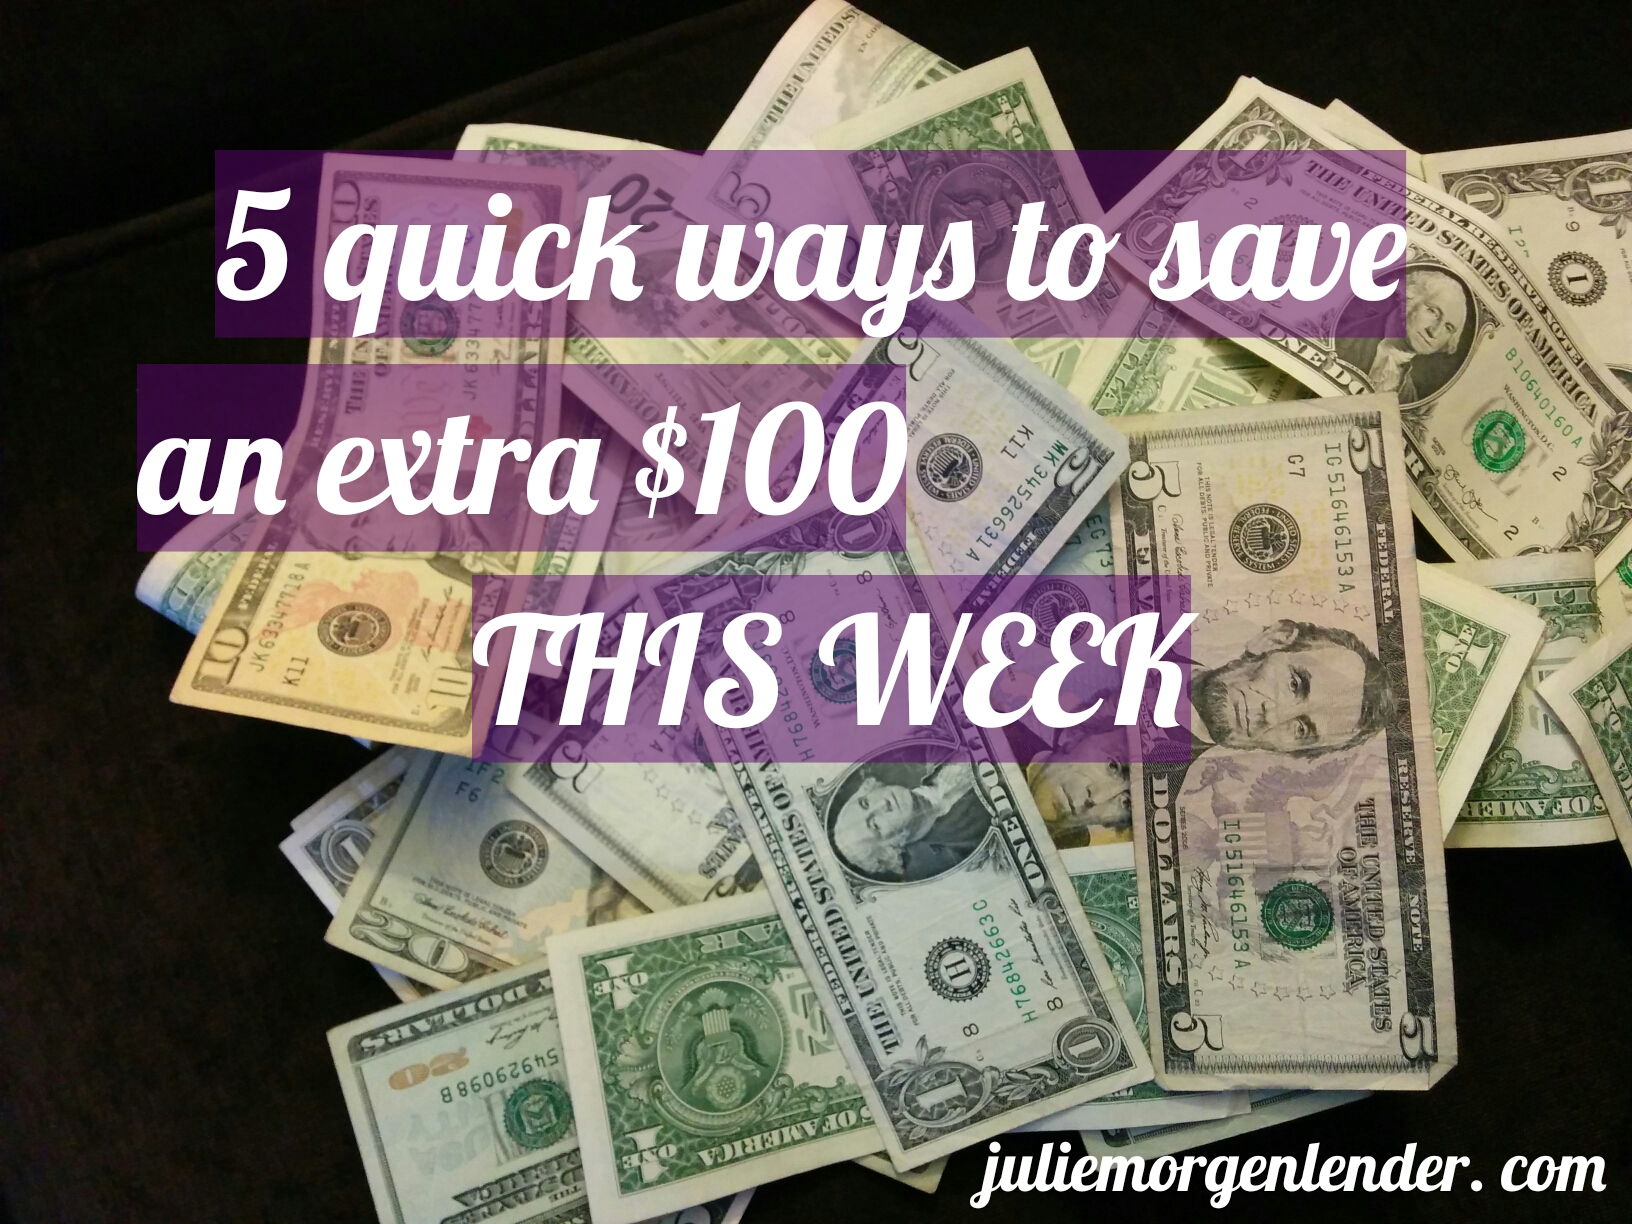 5 quick ways to save an extra $100 this week